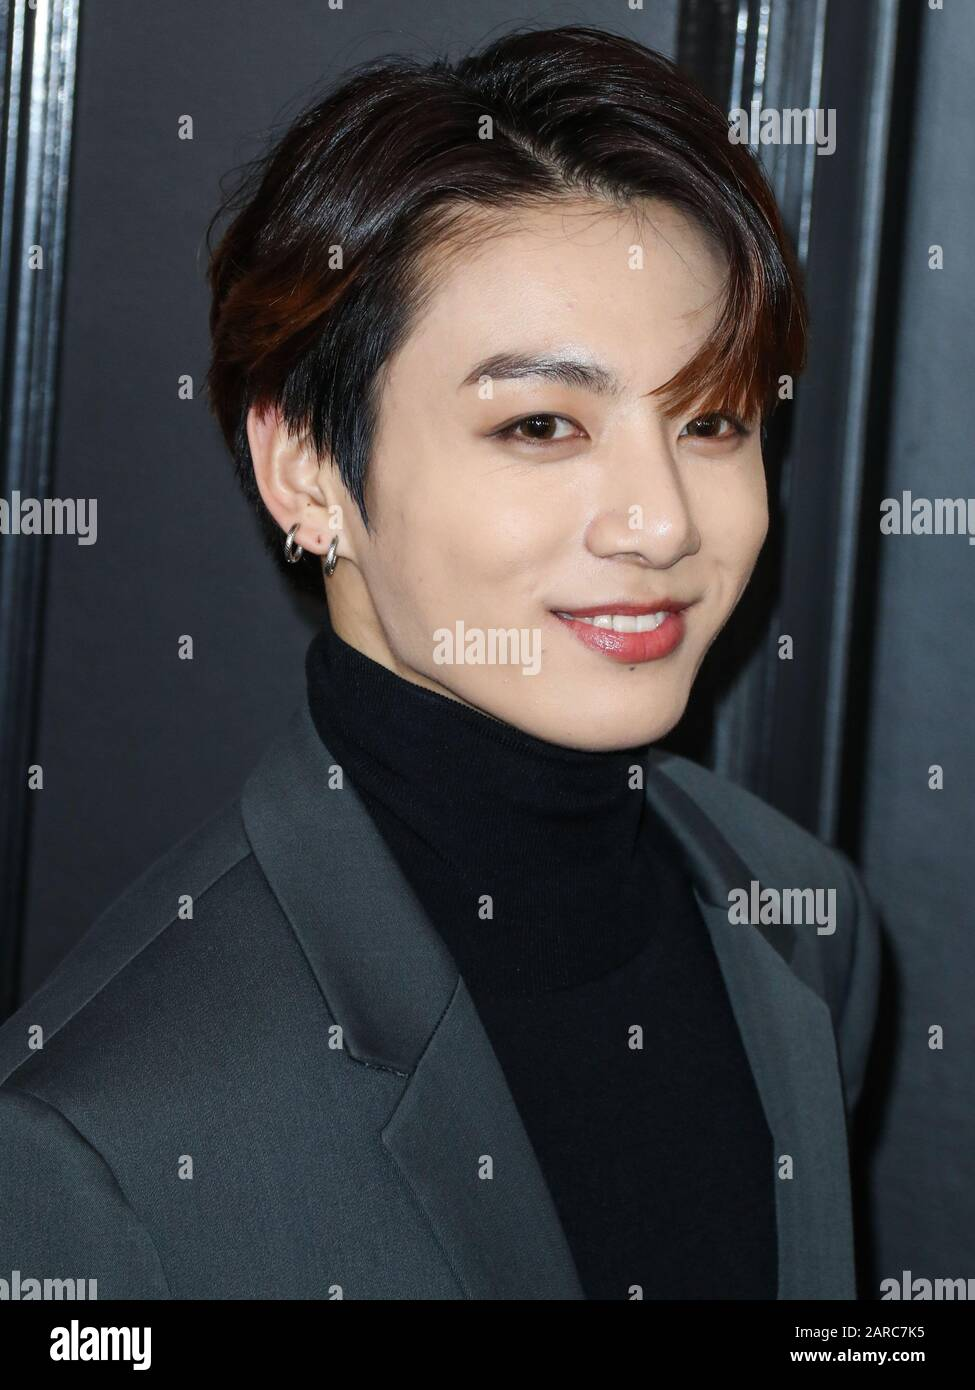 los angeles california usa january 26 rm of bts arrives at the 62nd annual grammy awards held at staples center on january 26 2020 in los angeles california united states photo https www alamy com los angeles california usa january 26 rm of bts arrives at the 62nd annual grammy awards held at staples center on january 26 2020 in los angeles california united states photo by xavier collinimage press agency image341403529 html